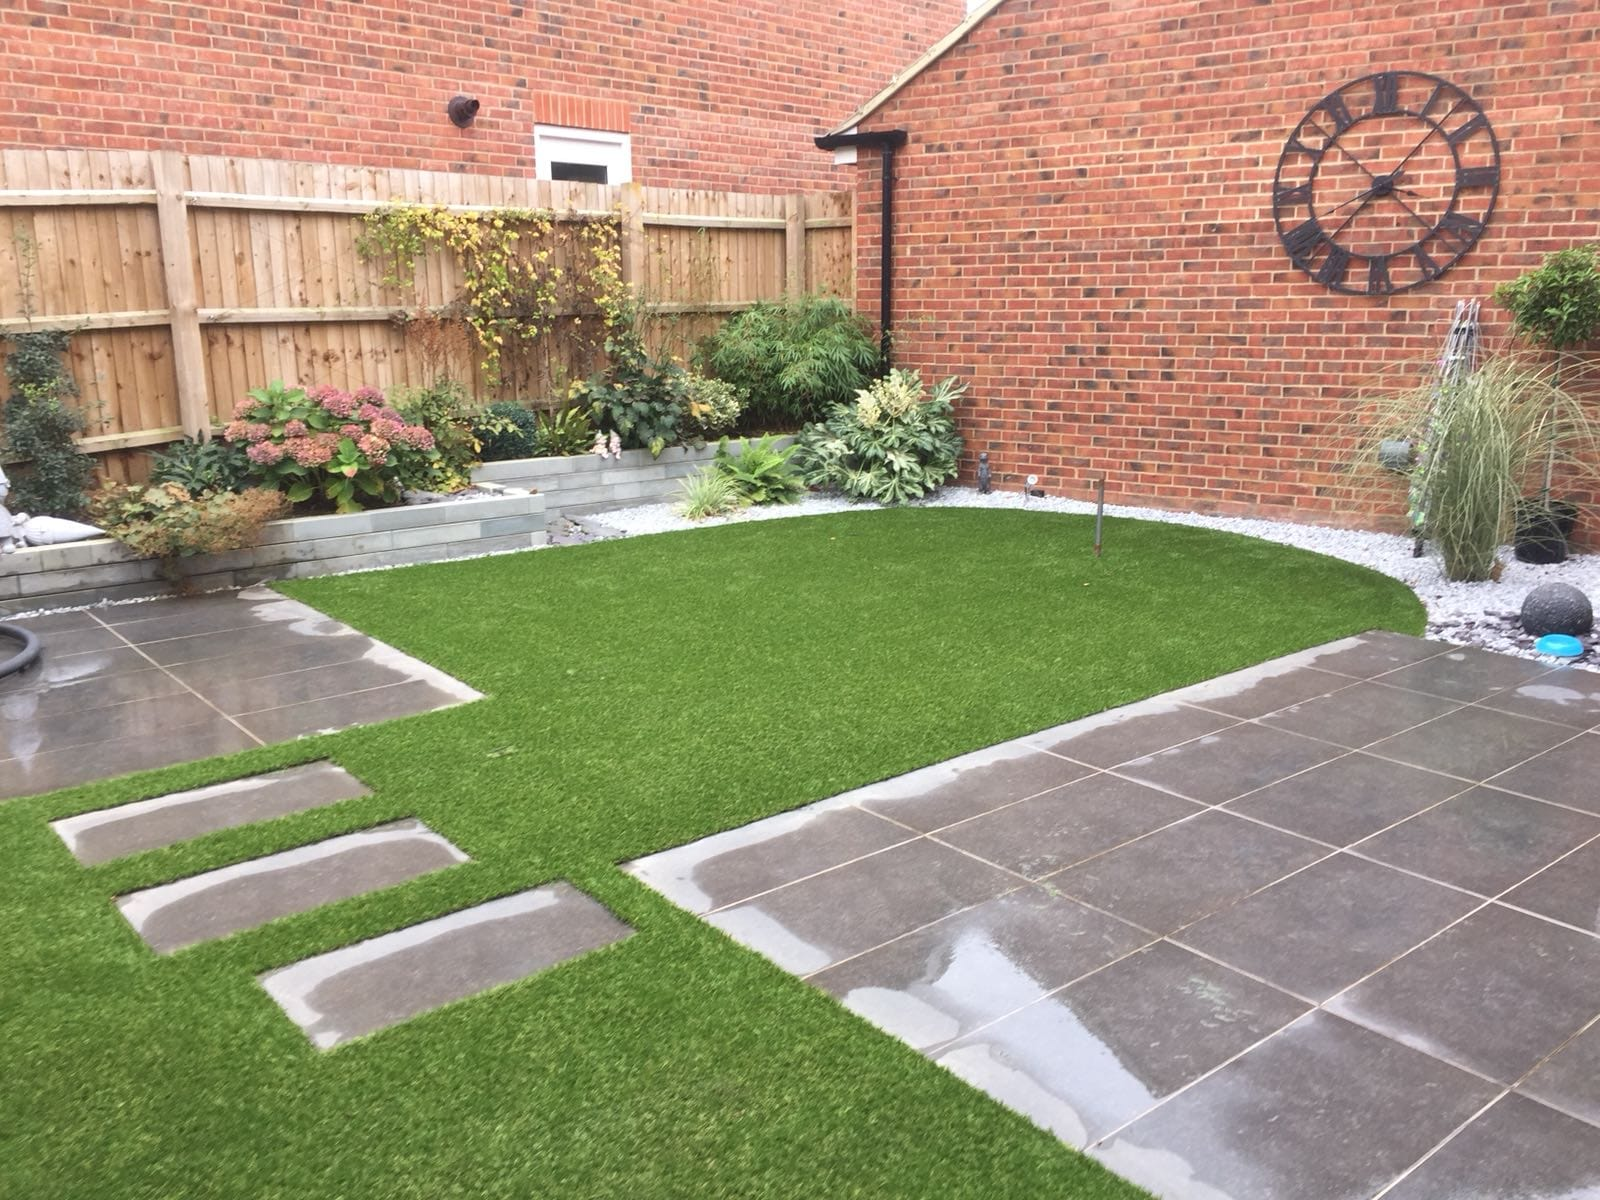 How to lay your own artificial grass